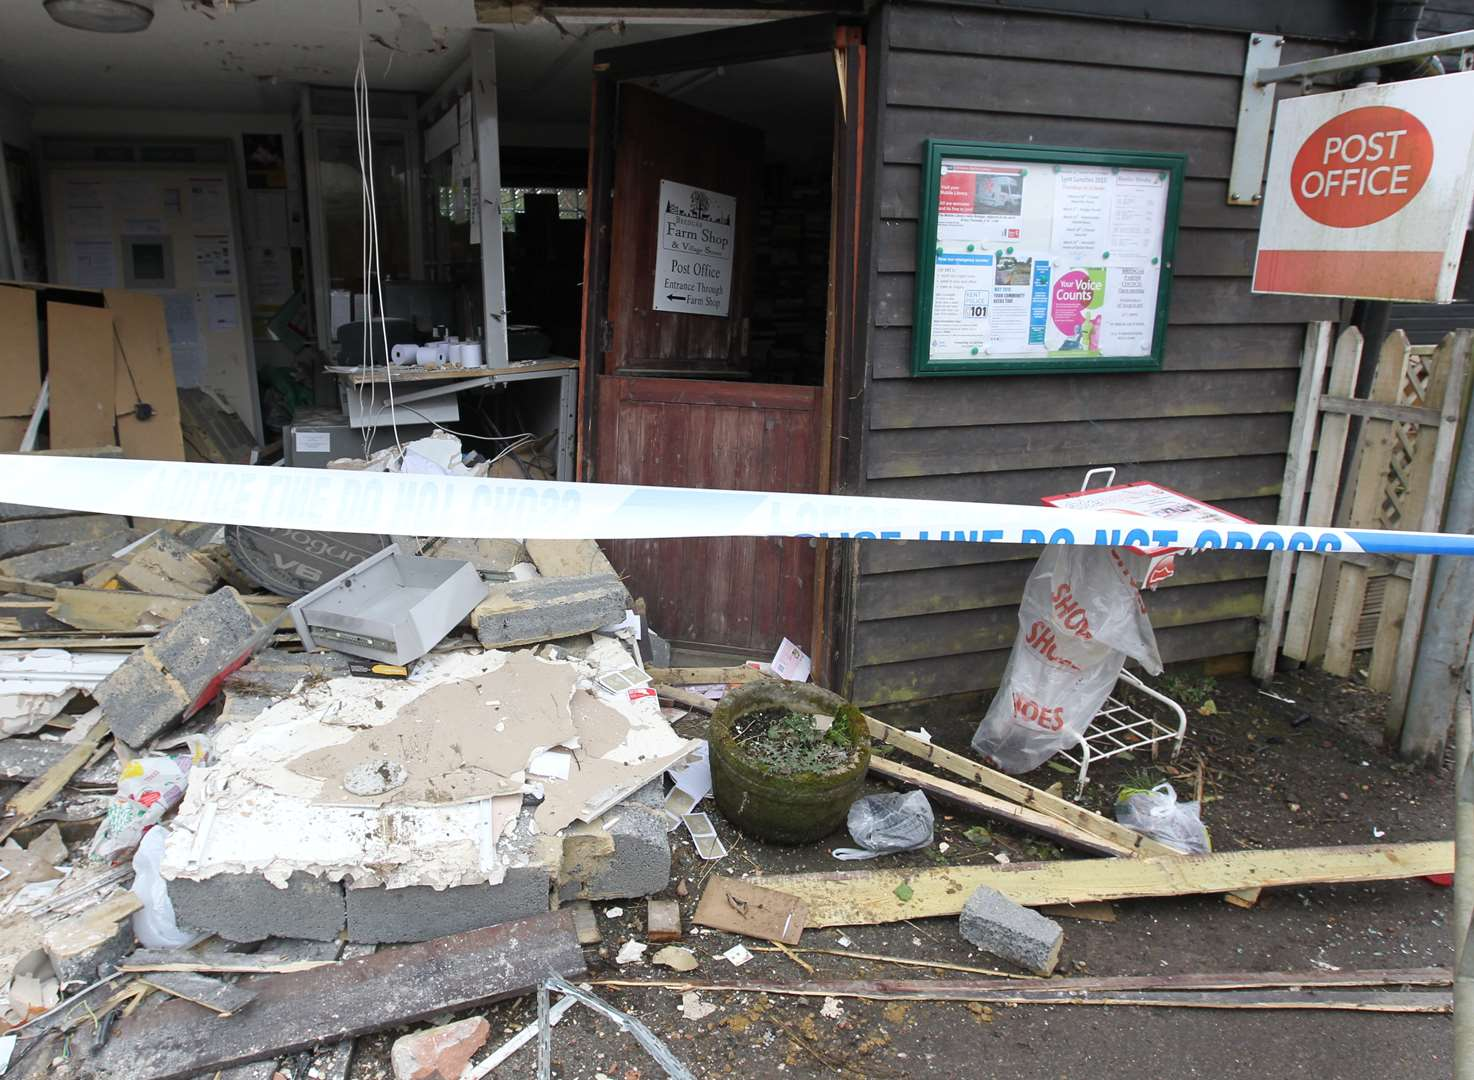 Post office to reopen after ram raid bid